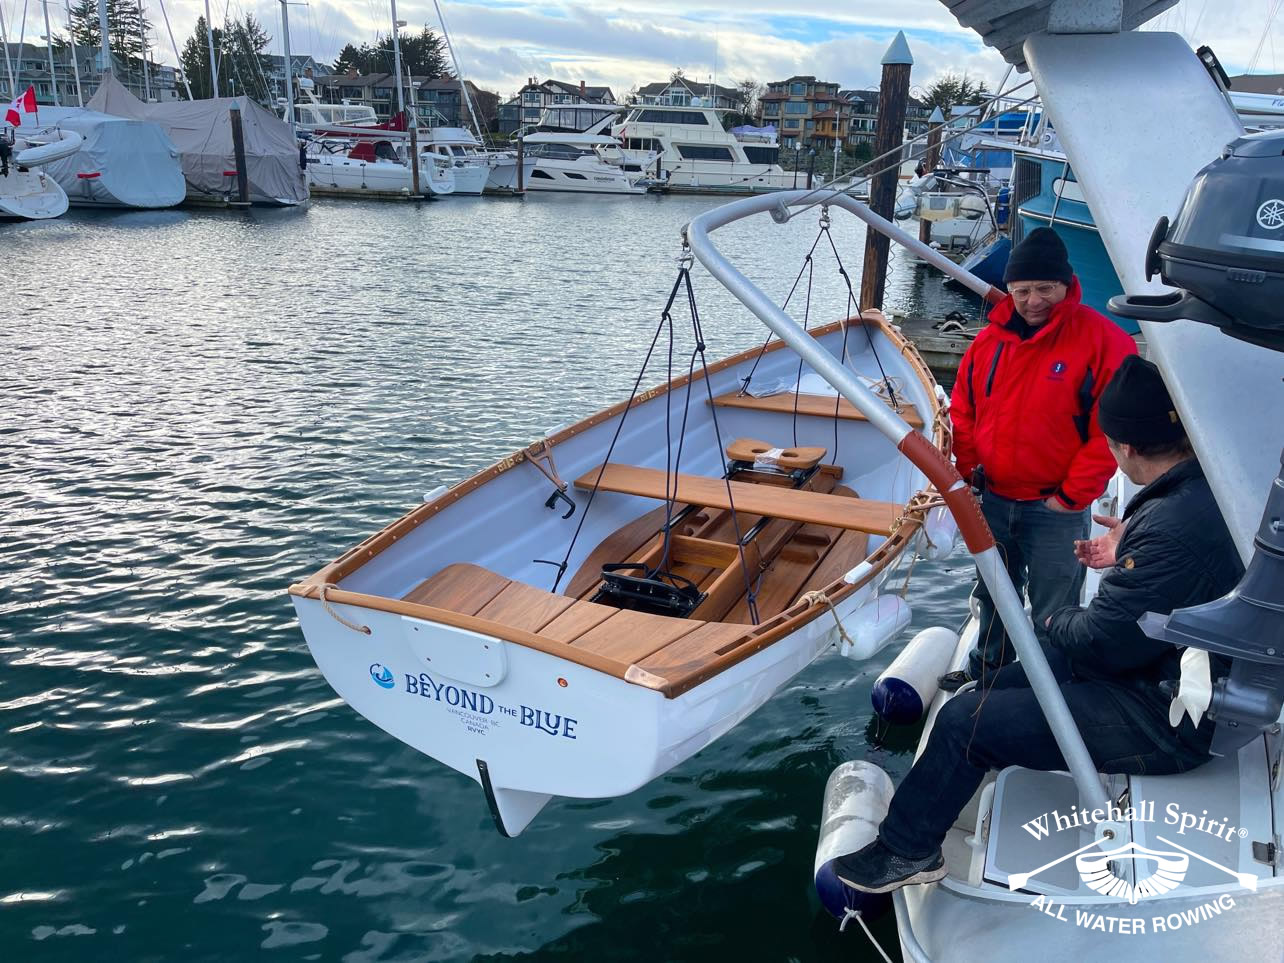 Beyond-the-Blue-boat-owner-David-with-Whitehall-Rowing-and-Sail-6L